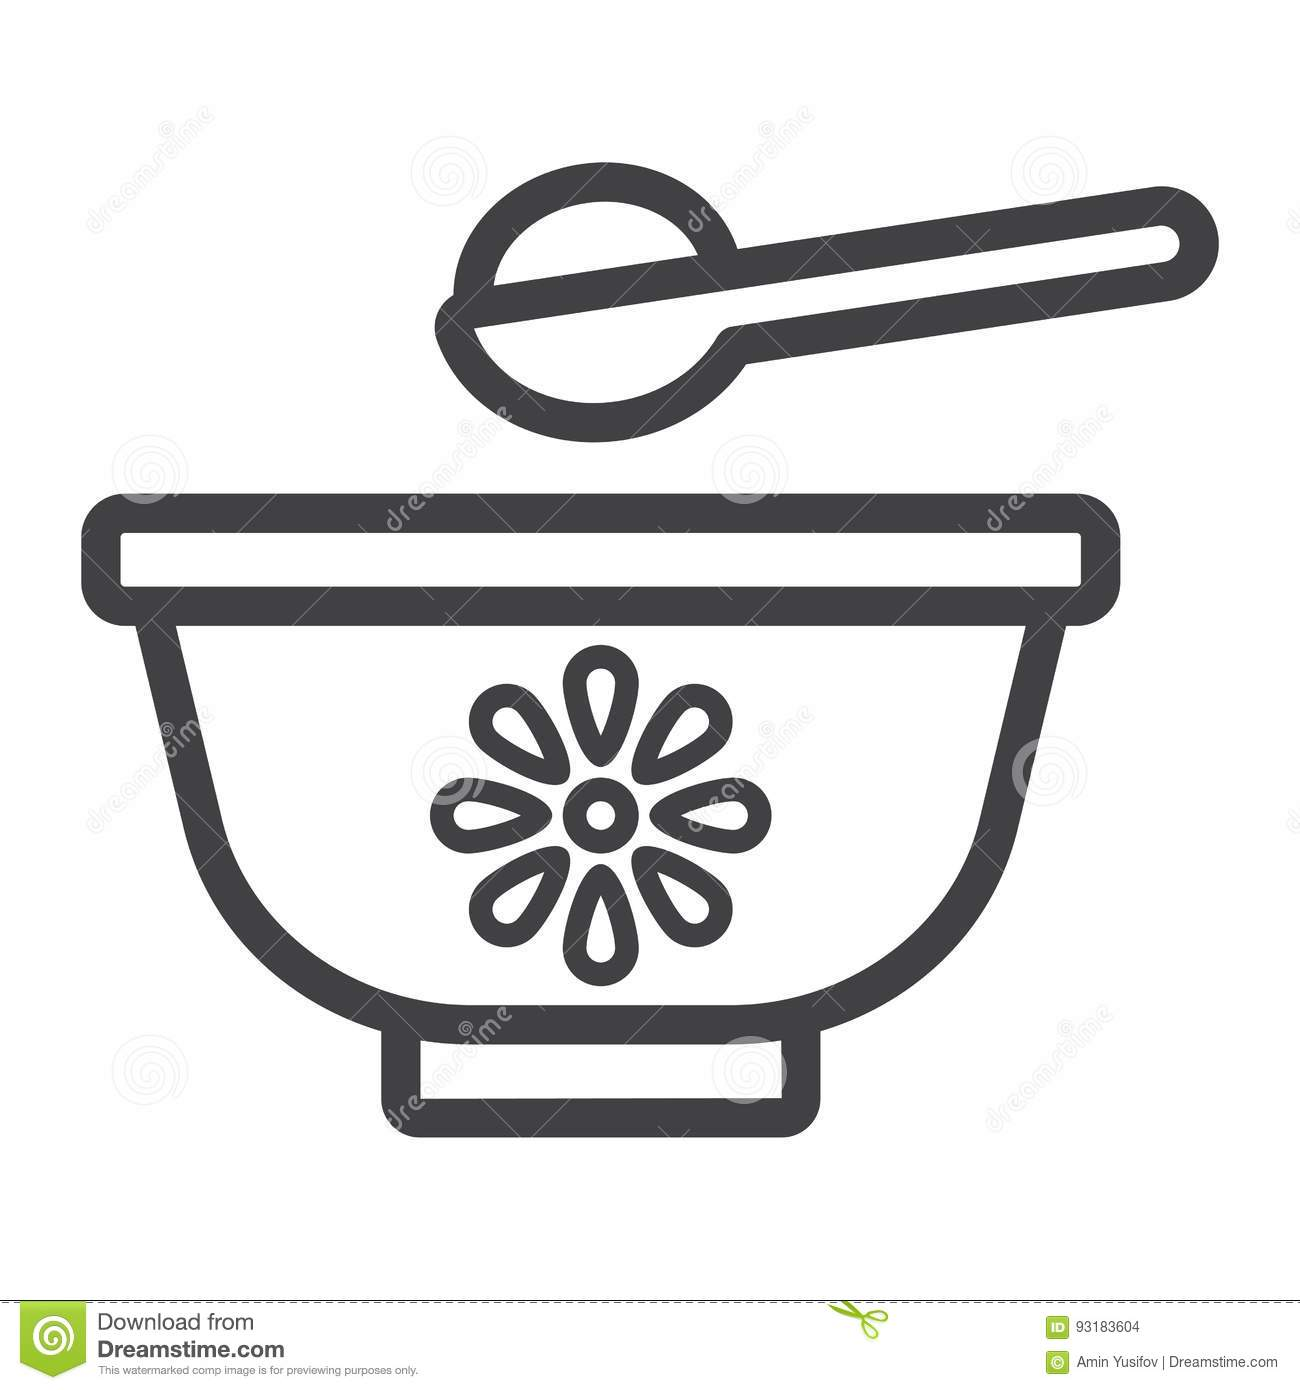 Baby Bowl Line Icon, Baby Food And Nutrition Stock Vector ...